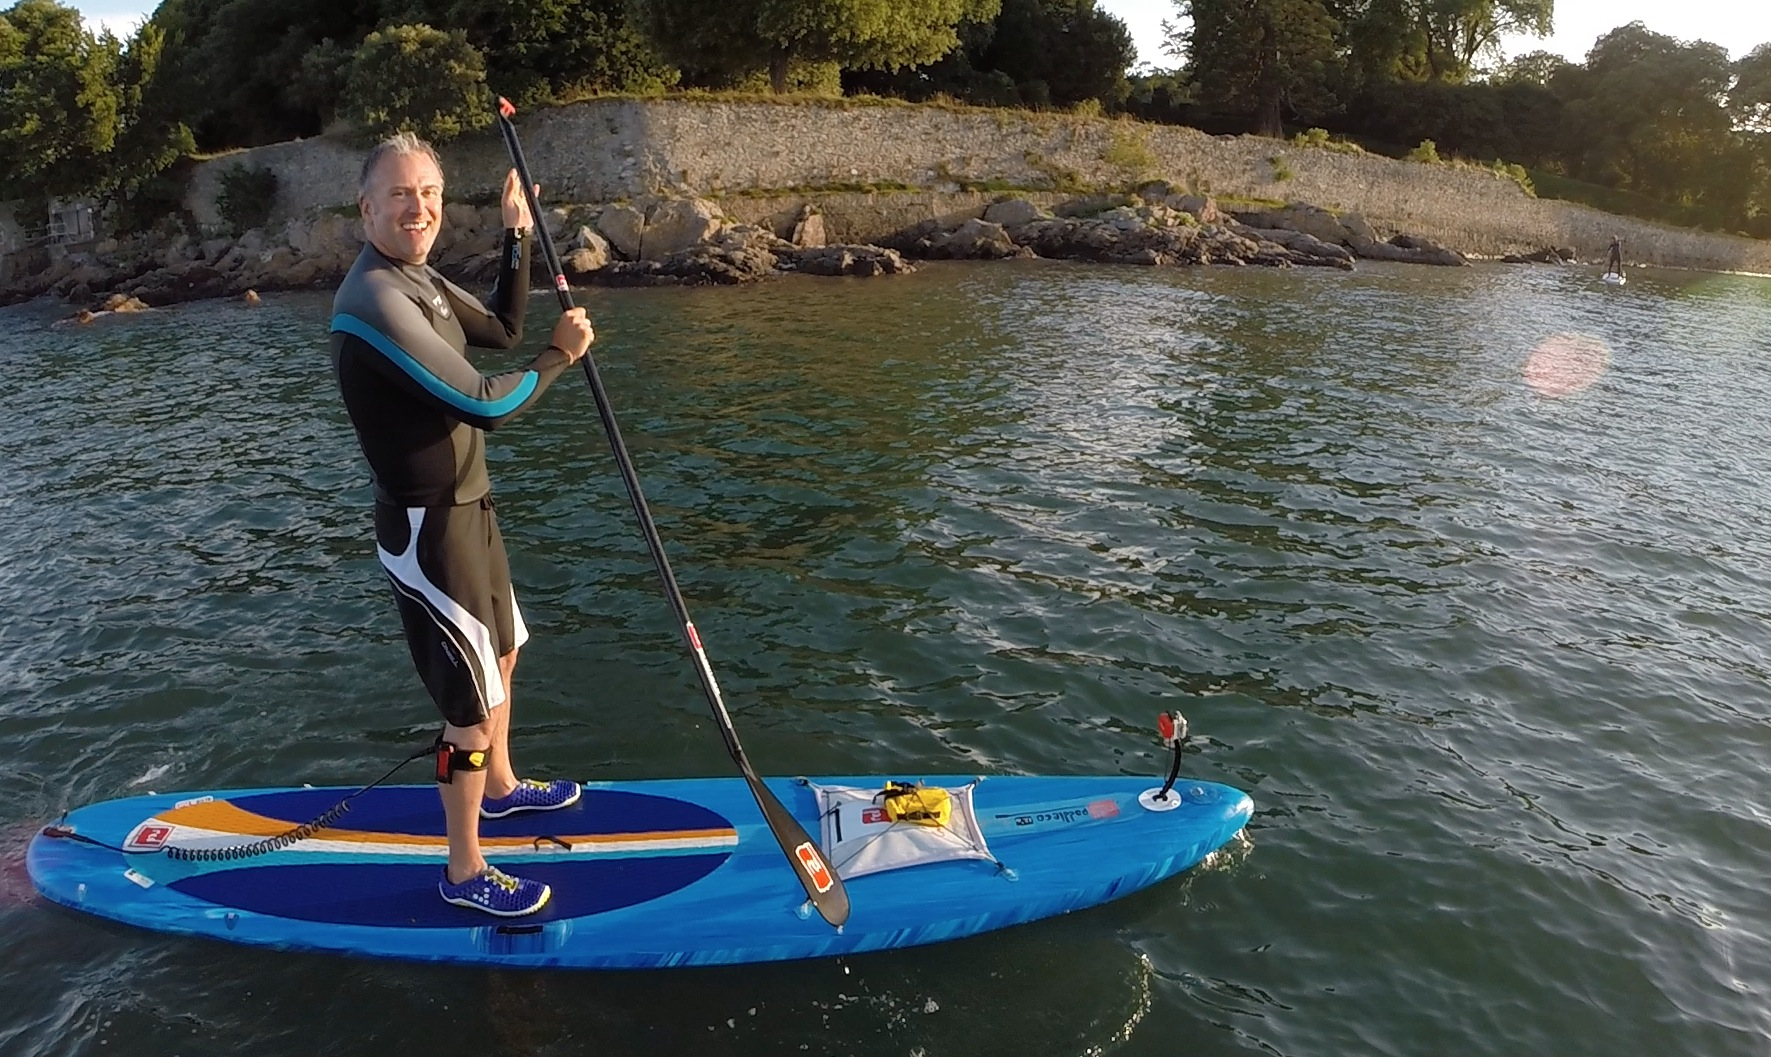 SUP Gear - kit for local waterways